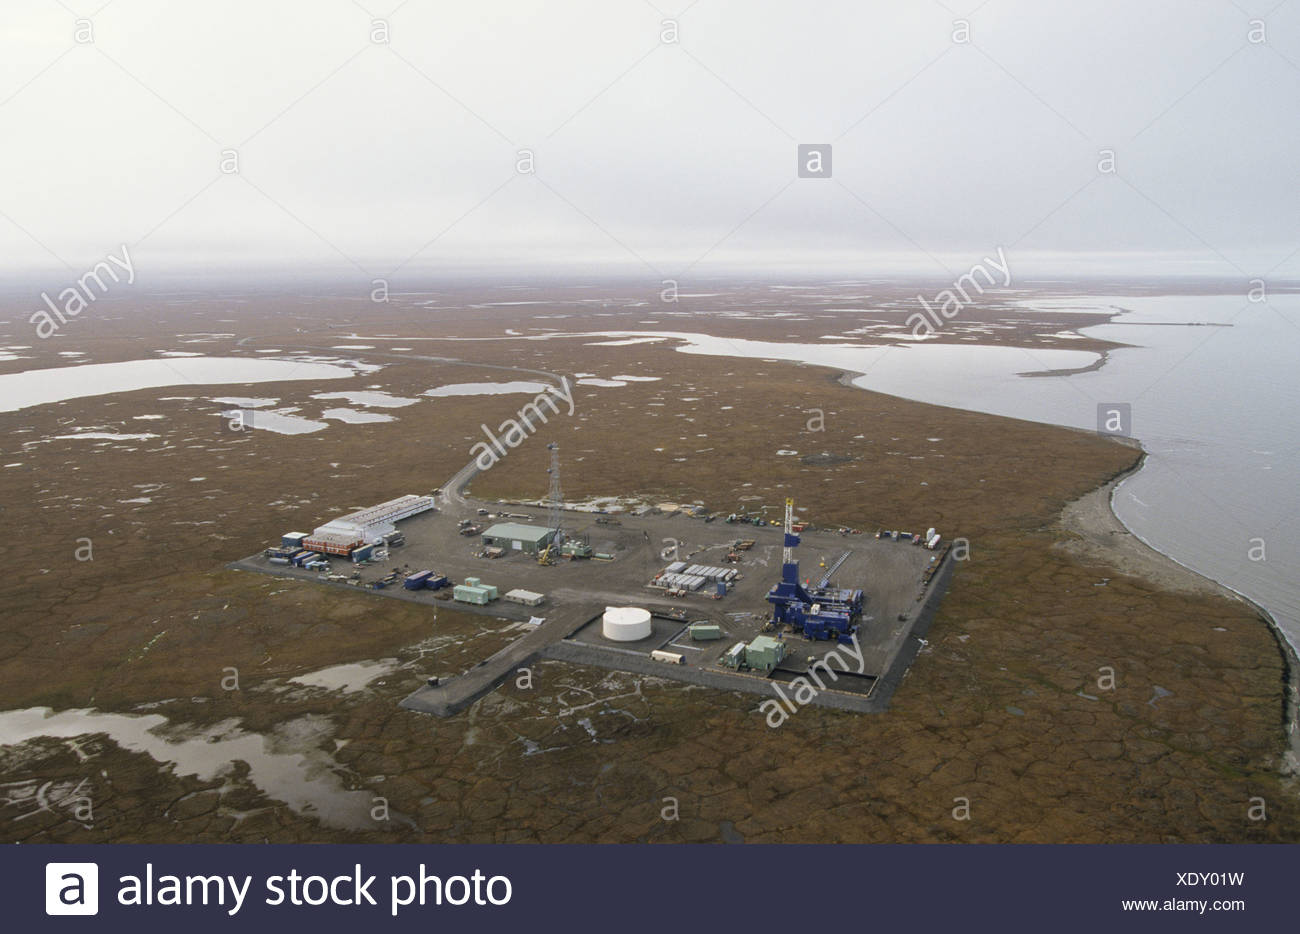 Alaska. Badami oil developement approximately 35 miles west of ANWR . West view. Arctic ocean to the North. - Stock Image